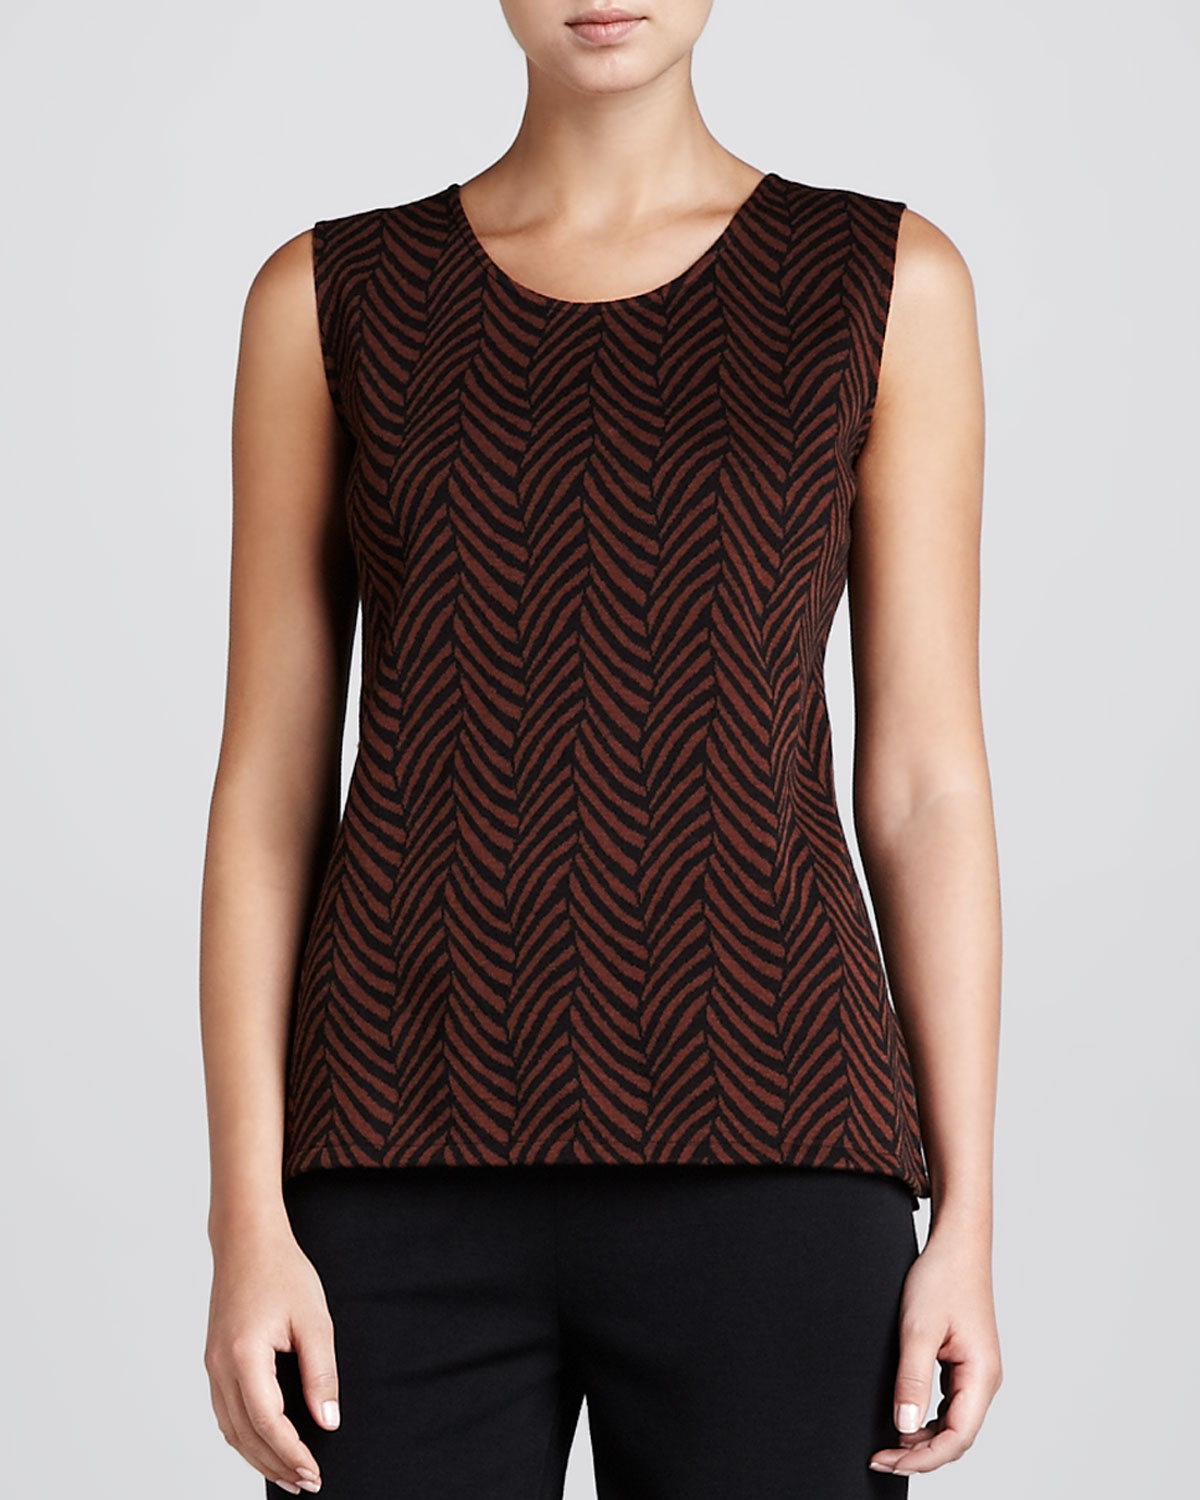 Jungle Jacquard Long Tank, Womens   Caroline Rose   Brown/Black (2X (20/22))